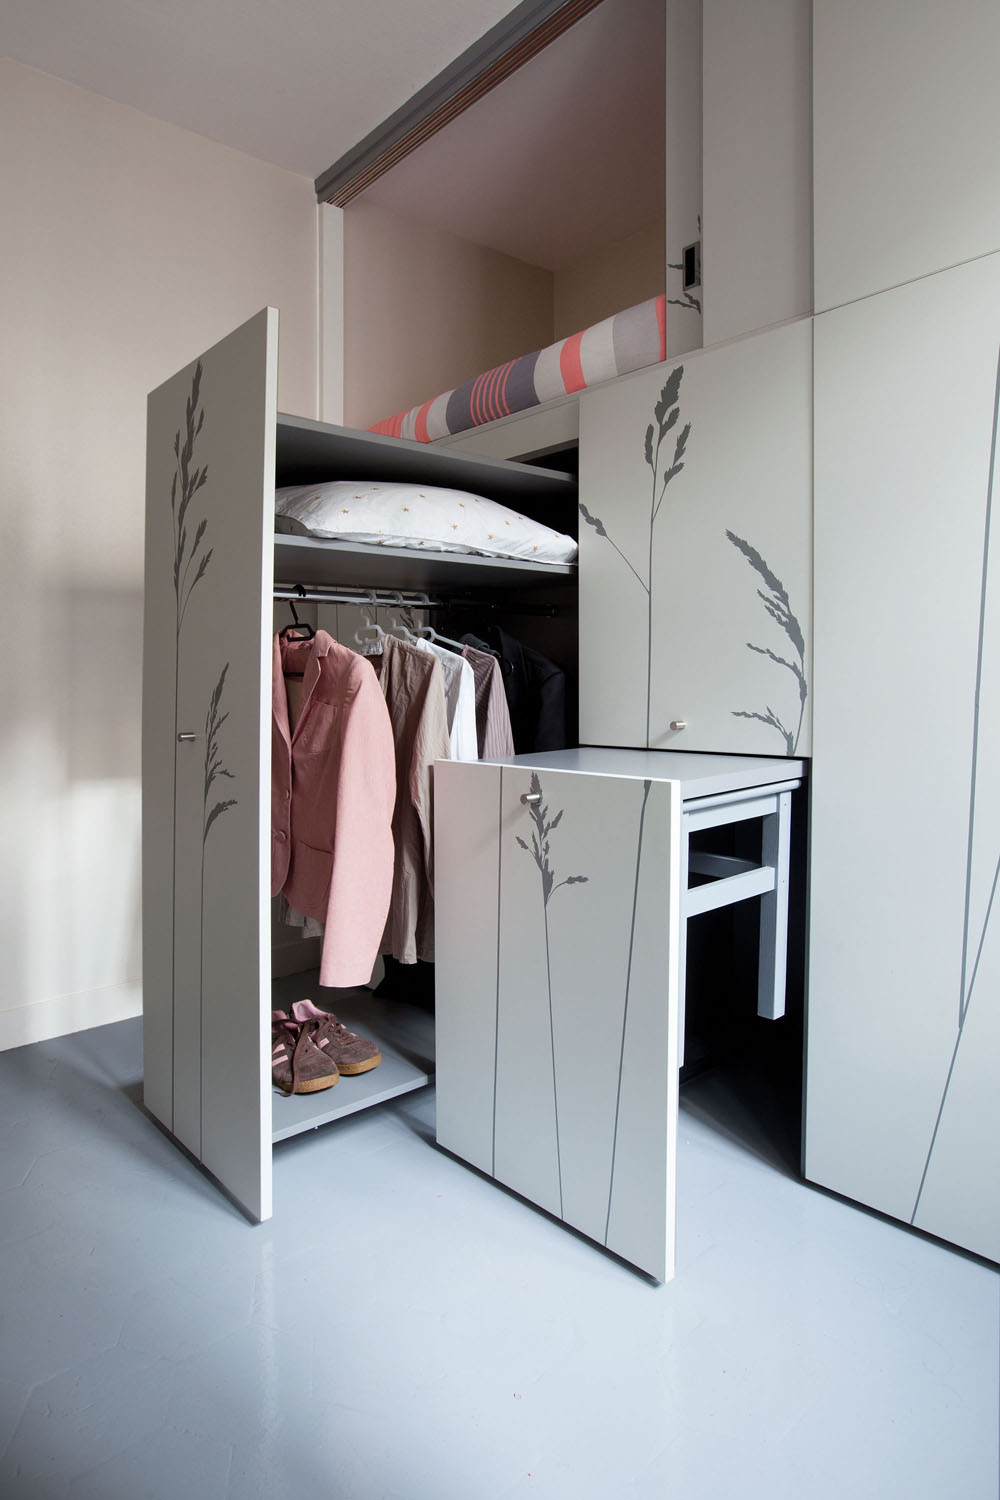 Compact Apartment In Paris by Kitoko Studio 14 Incredibly Small Apartment in Paris Reduces Functions to Minimum